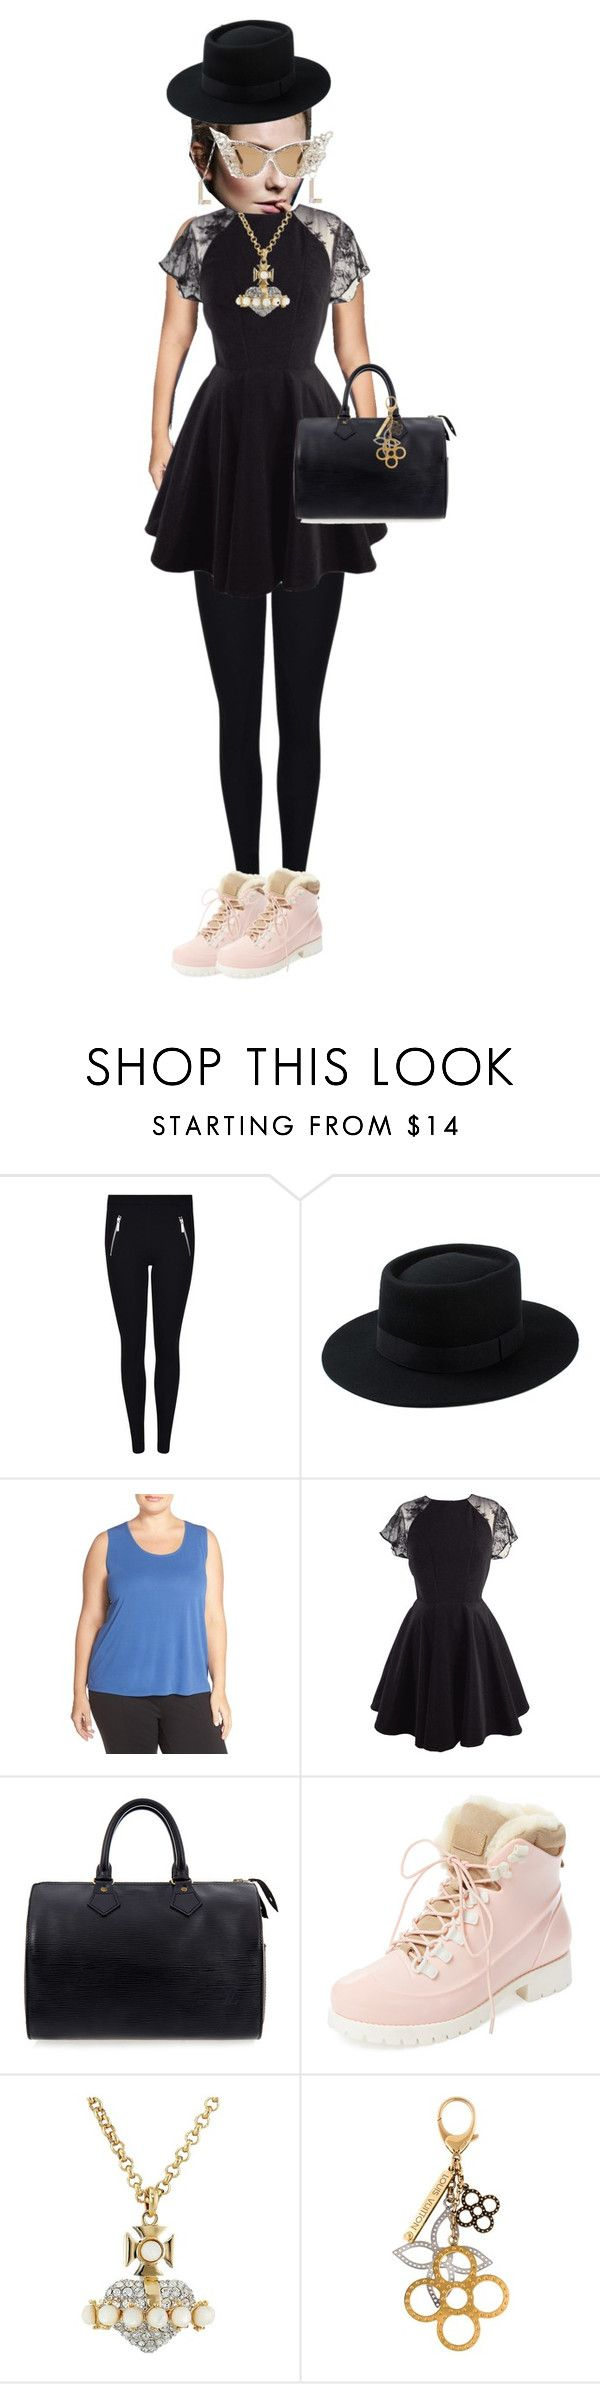 """a full set"" by aiseosab on Polyvore featuring A-Morir by Kerin Rose, Eileen Fisher, Louis Vuitton, Australia Luxe Collective, Vivienne Westwood and plus size clothing"